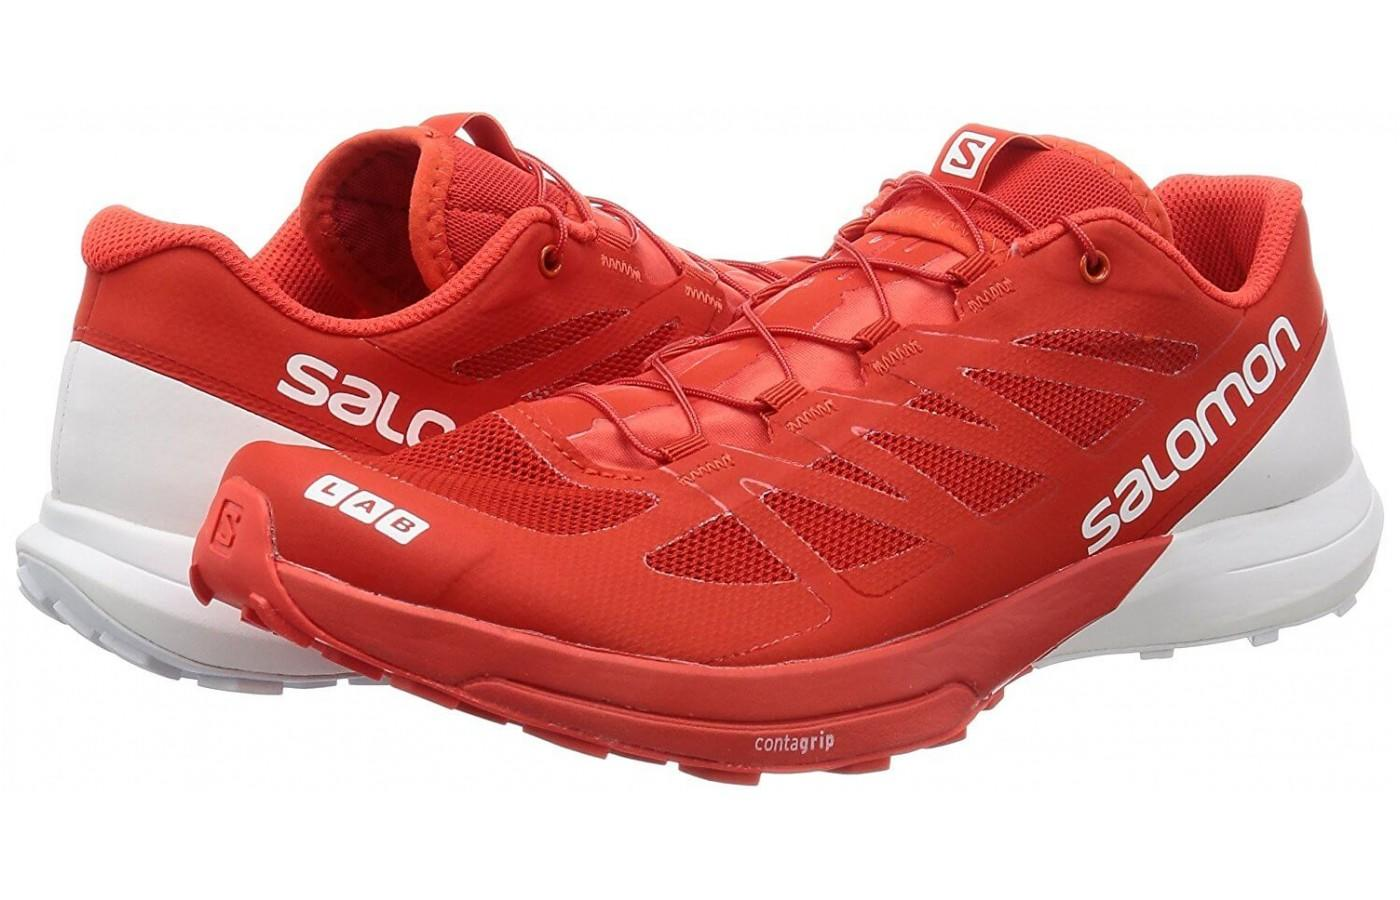 Salomon's S-Lab Sense 6 is a trail shoe with the feeling of a running shoe.